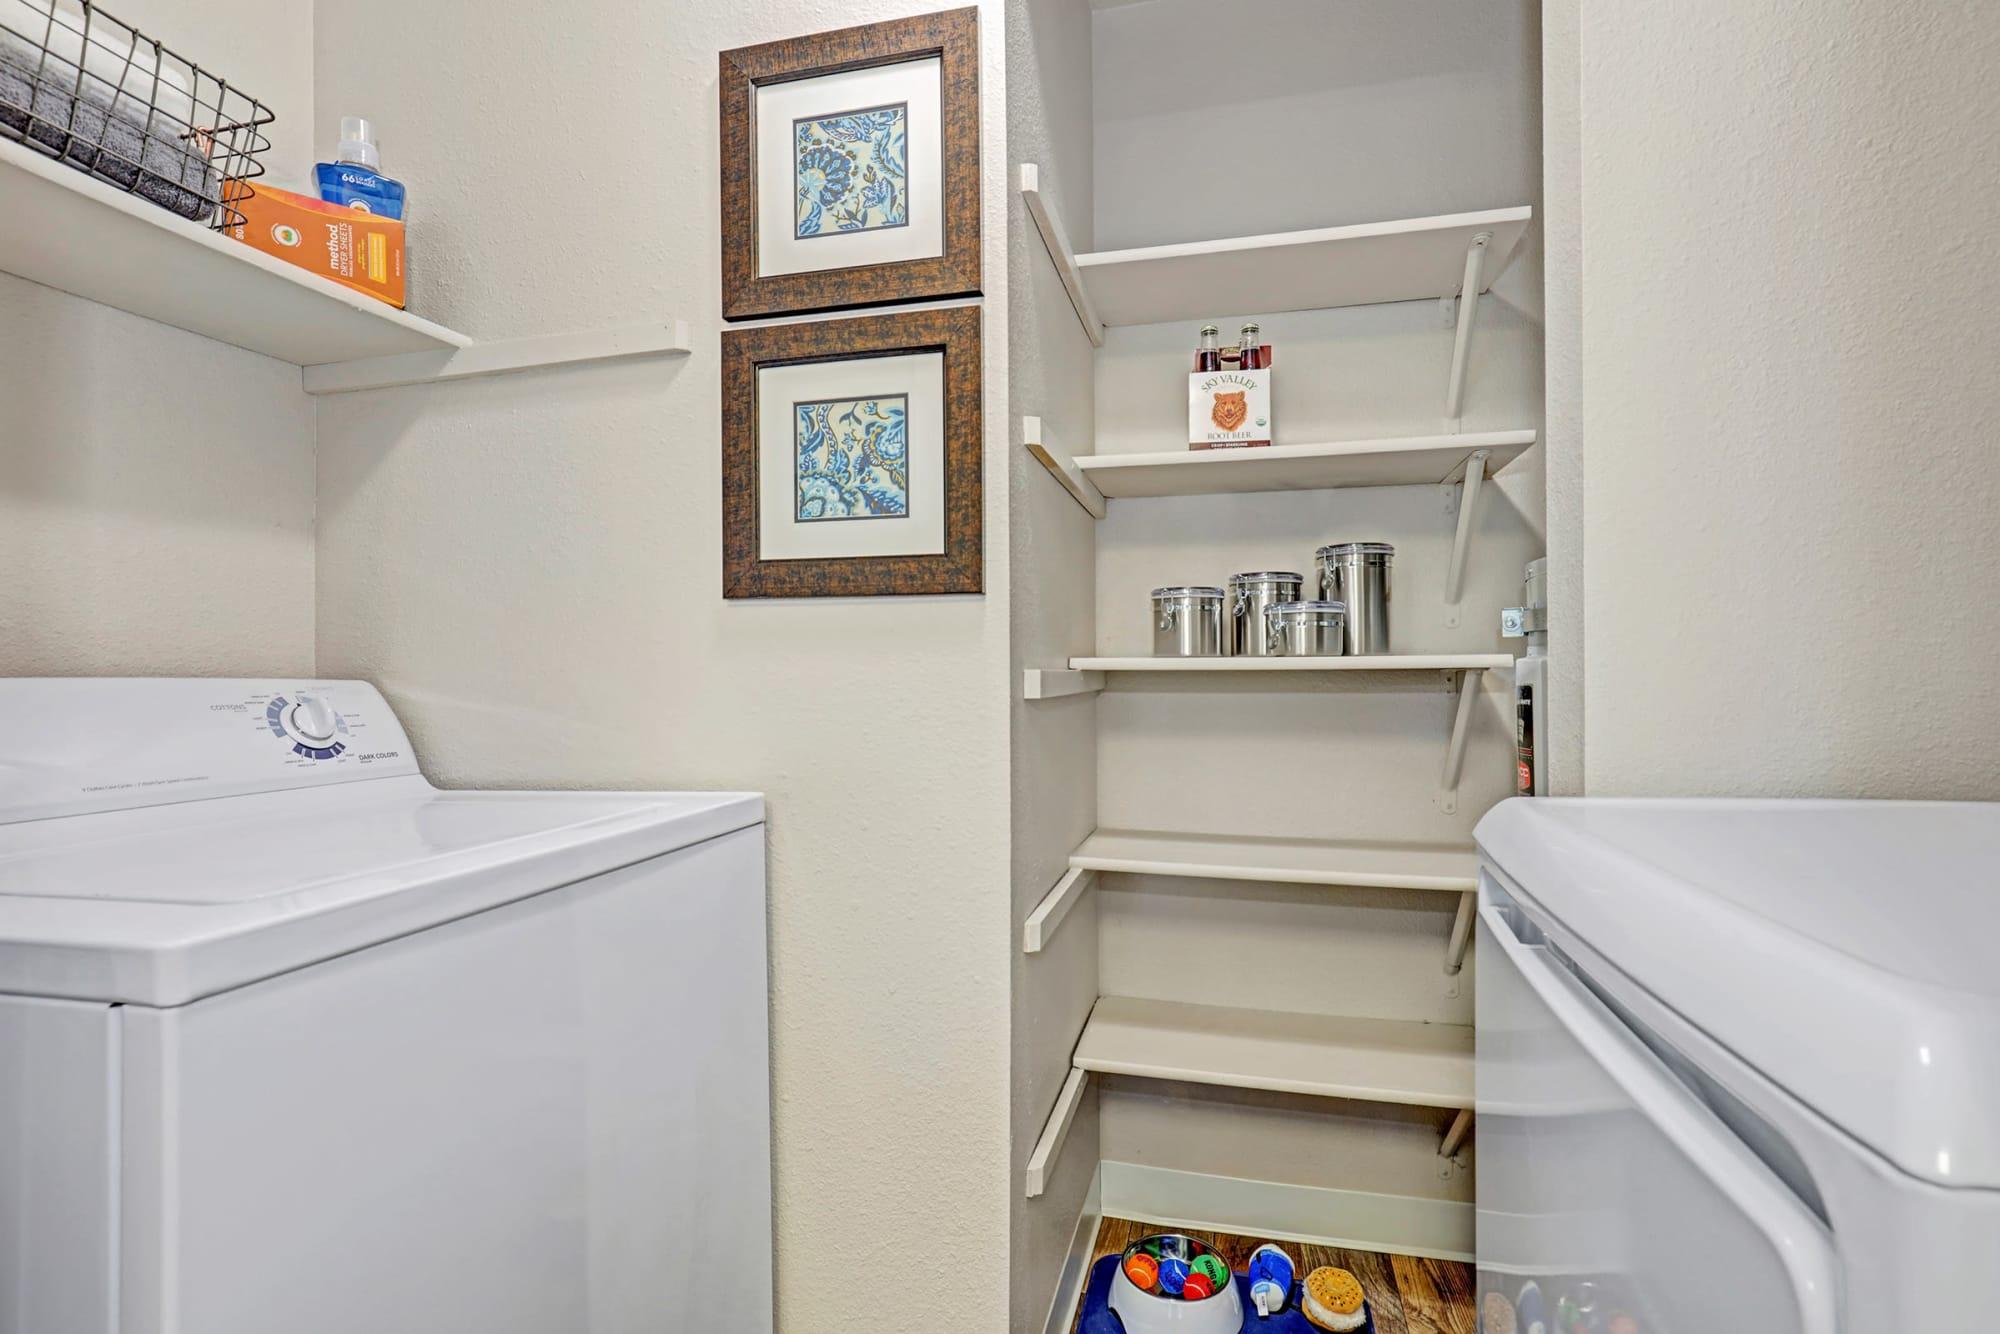 Washer, dryer and ample storage space in the apartments at Cascade Ridge in Silverdale, Washington